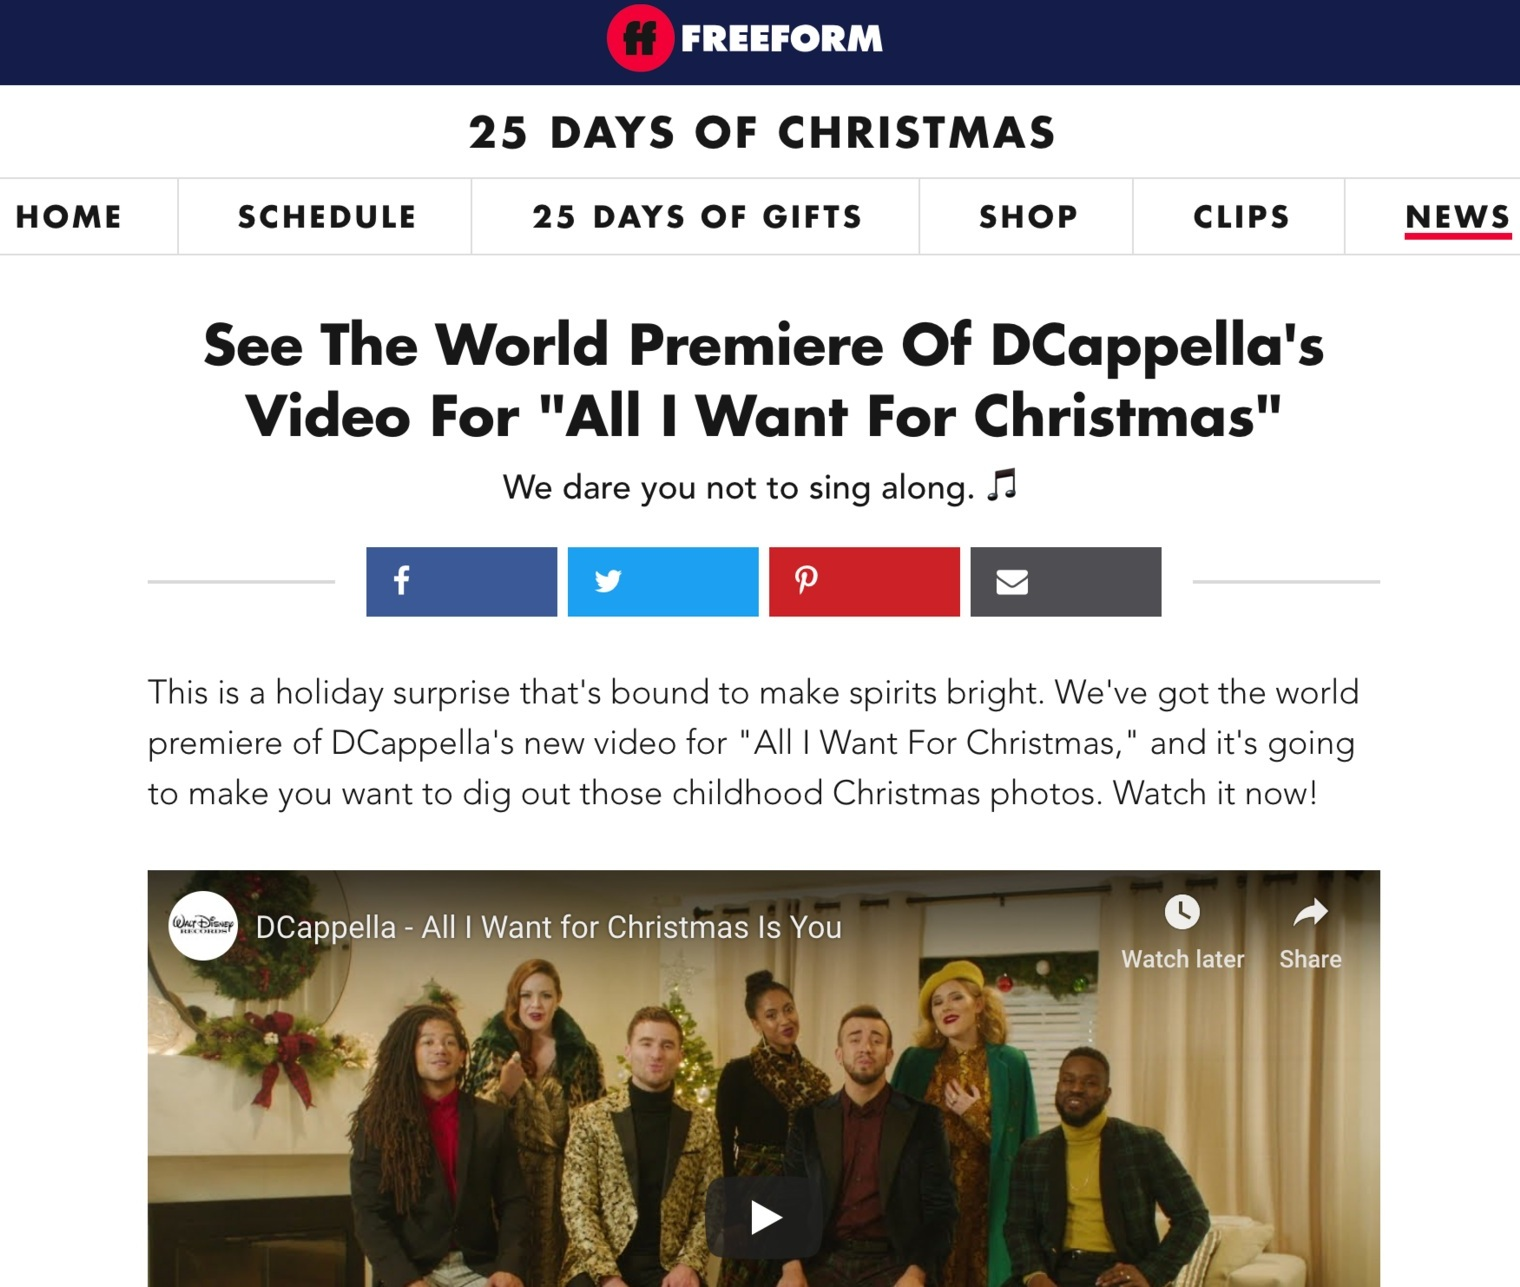 Via FREEFORM  Music video featured on TV for Freeform's 25 Days of Christmas